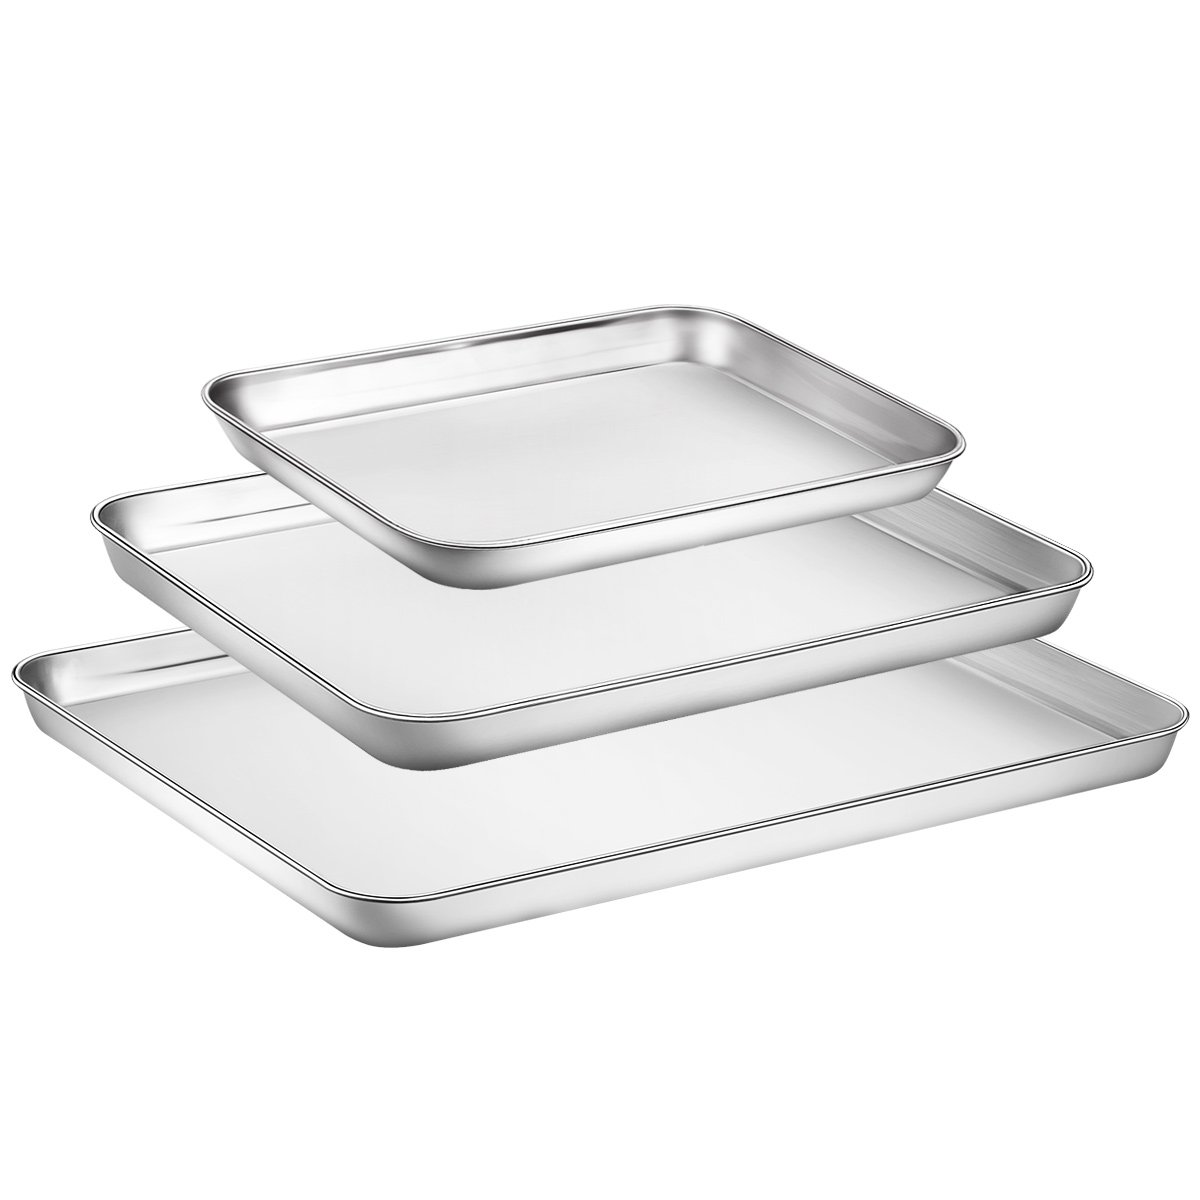 Baking Sheet Set 3, Zacfton Cookie Sheet Stainless Steel Toaster Oven Tray Pan Rectangle, Non Toxic & Healthy,Superior Mirror Finish & Easy Clean, Dishwasher Safe (16inch 12inch 9inch)